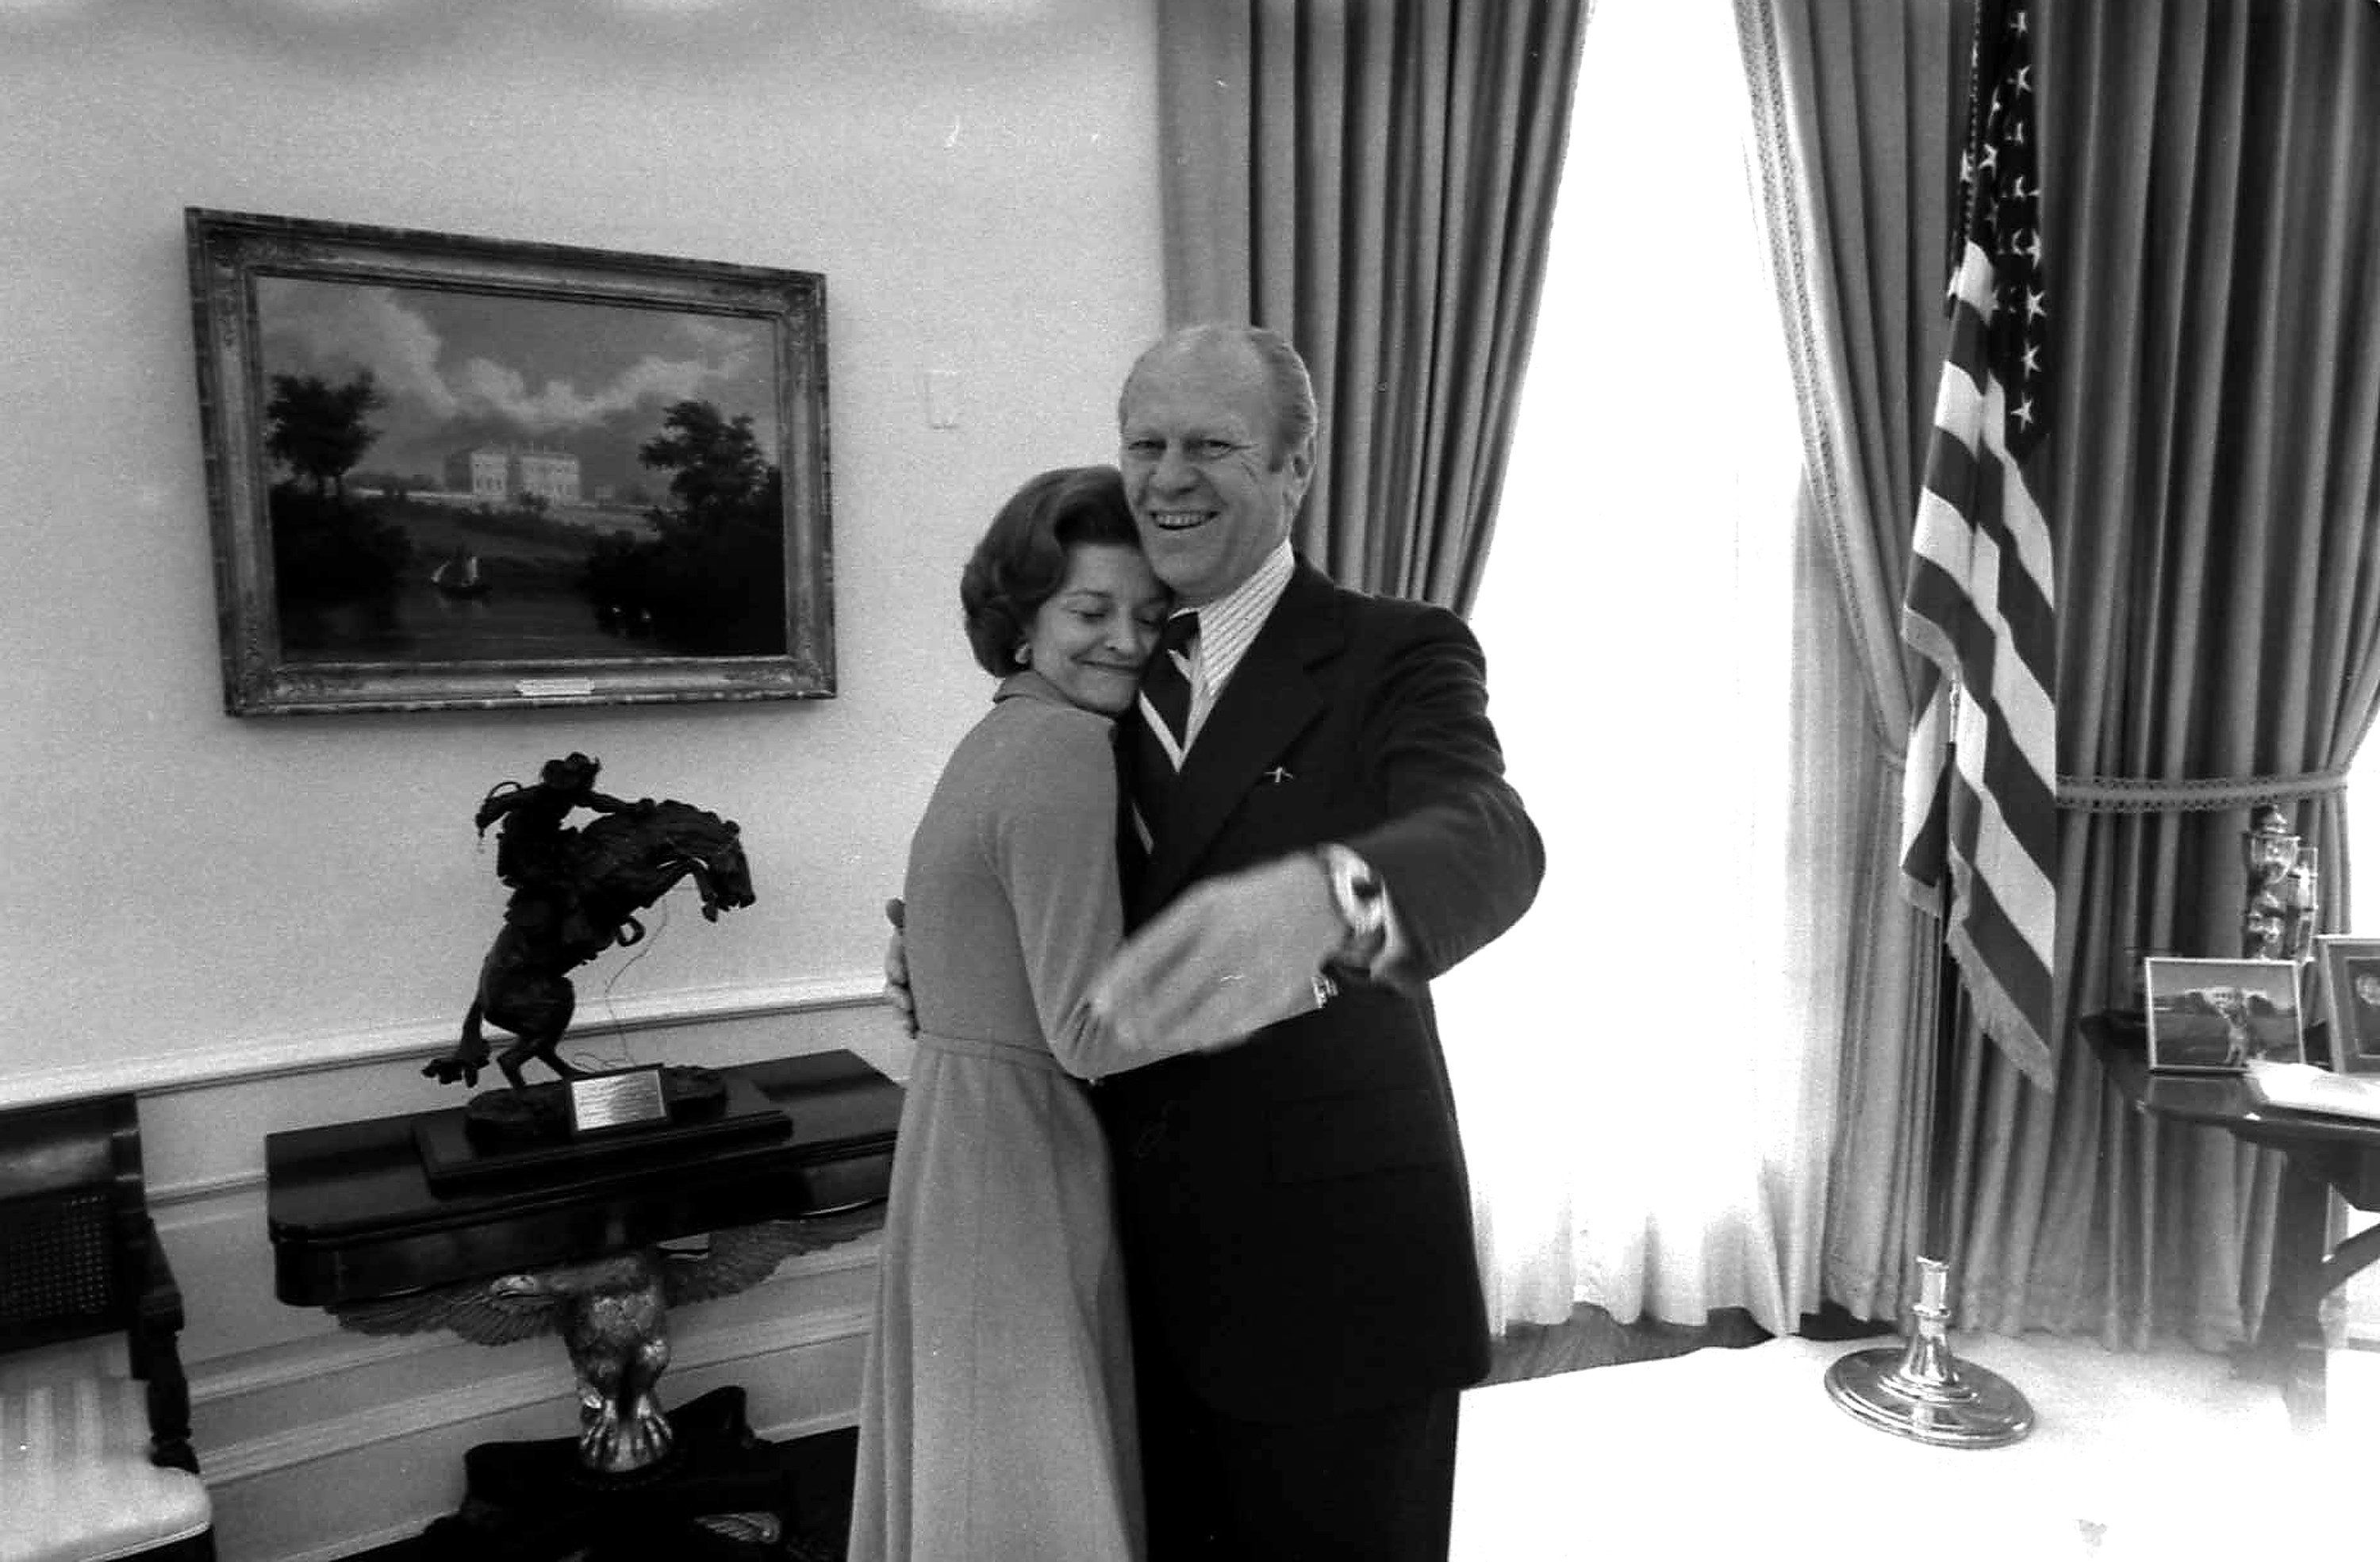 President Gerald Ford and his wife, Betty Ford, in the Oval Office. He served as commander-in-chief for just 895 days.